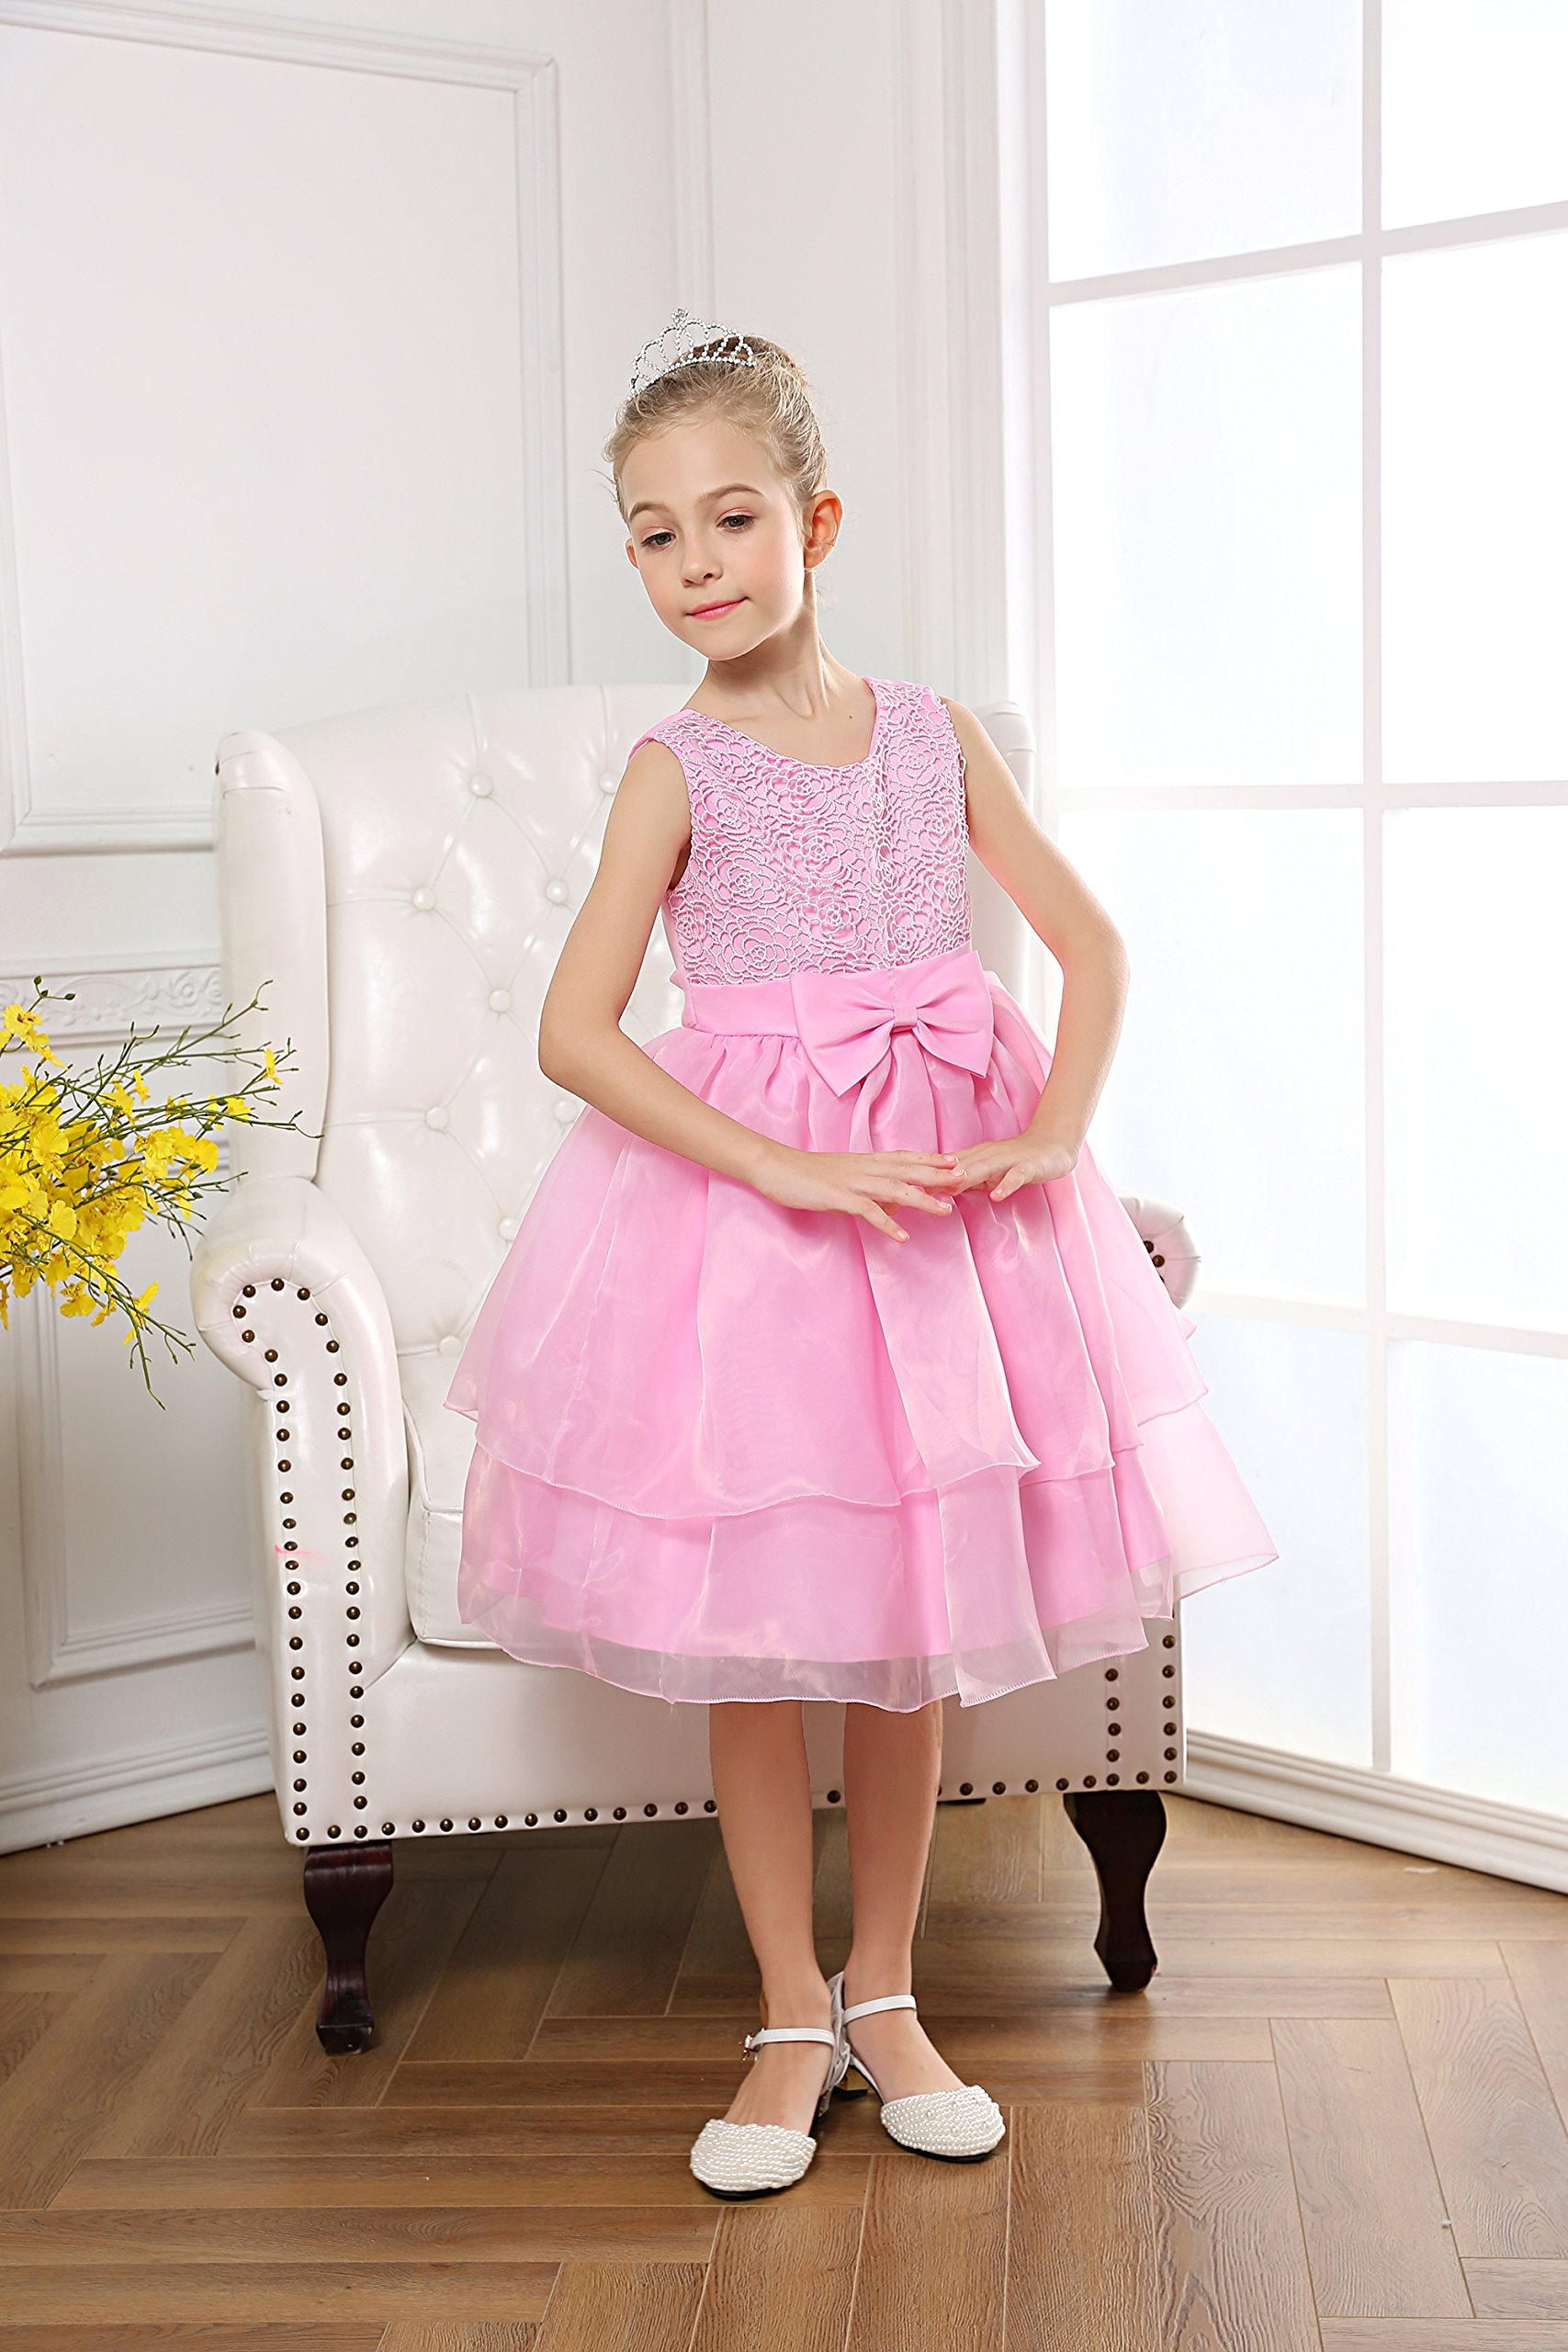 Fiream Flower Girls Dresses Tulle Sleeveless Princess Pageant Wedding Party Dresses(pink,3T/3-4YRS) by Fiream (Image #3)